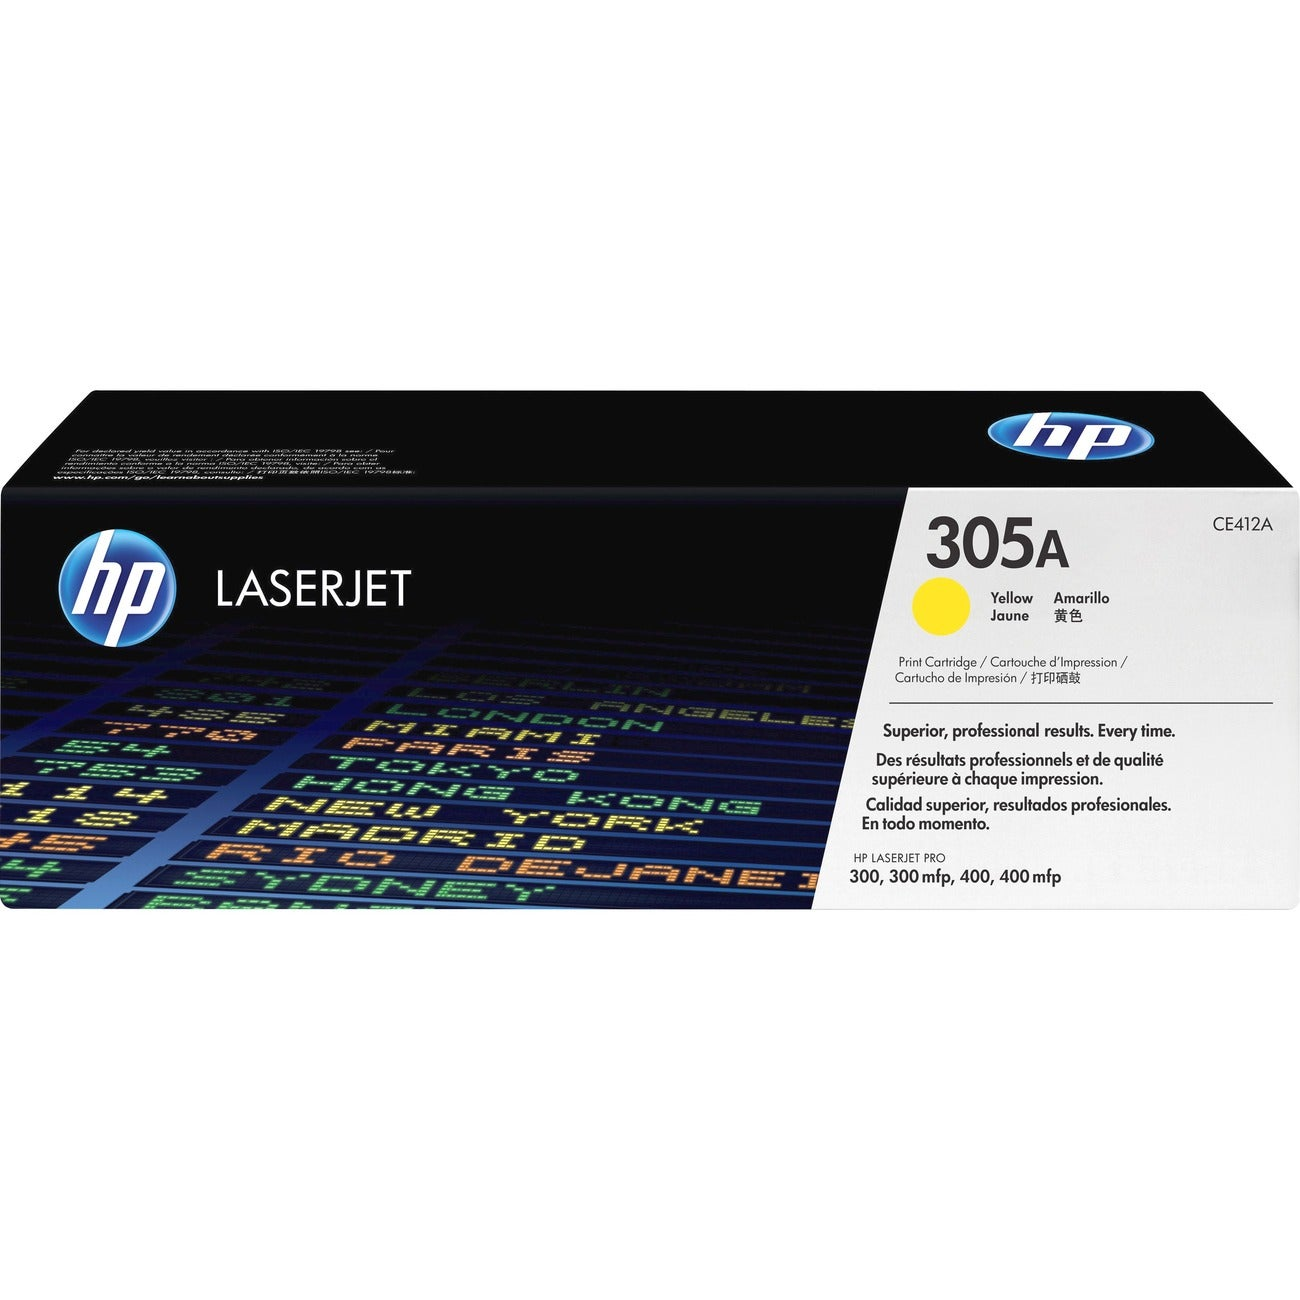 HP 305A Toner Cartridge for HP LaserJet Pro Printers (2,600 Pages) - Thumbnail 0